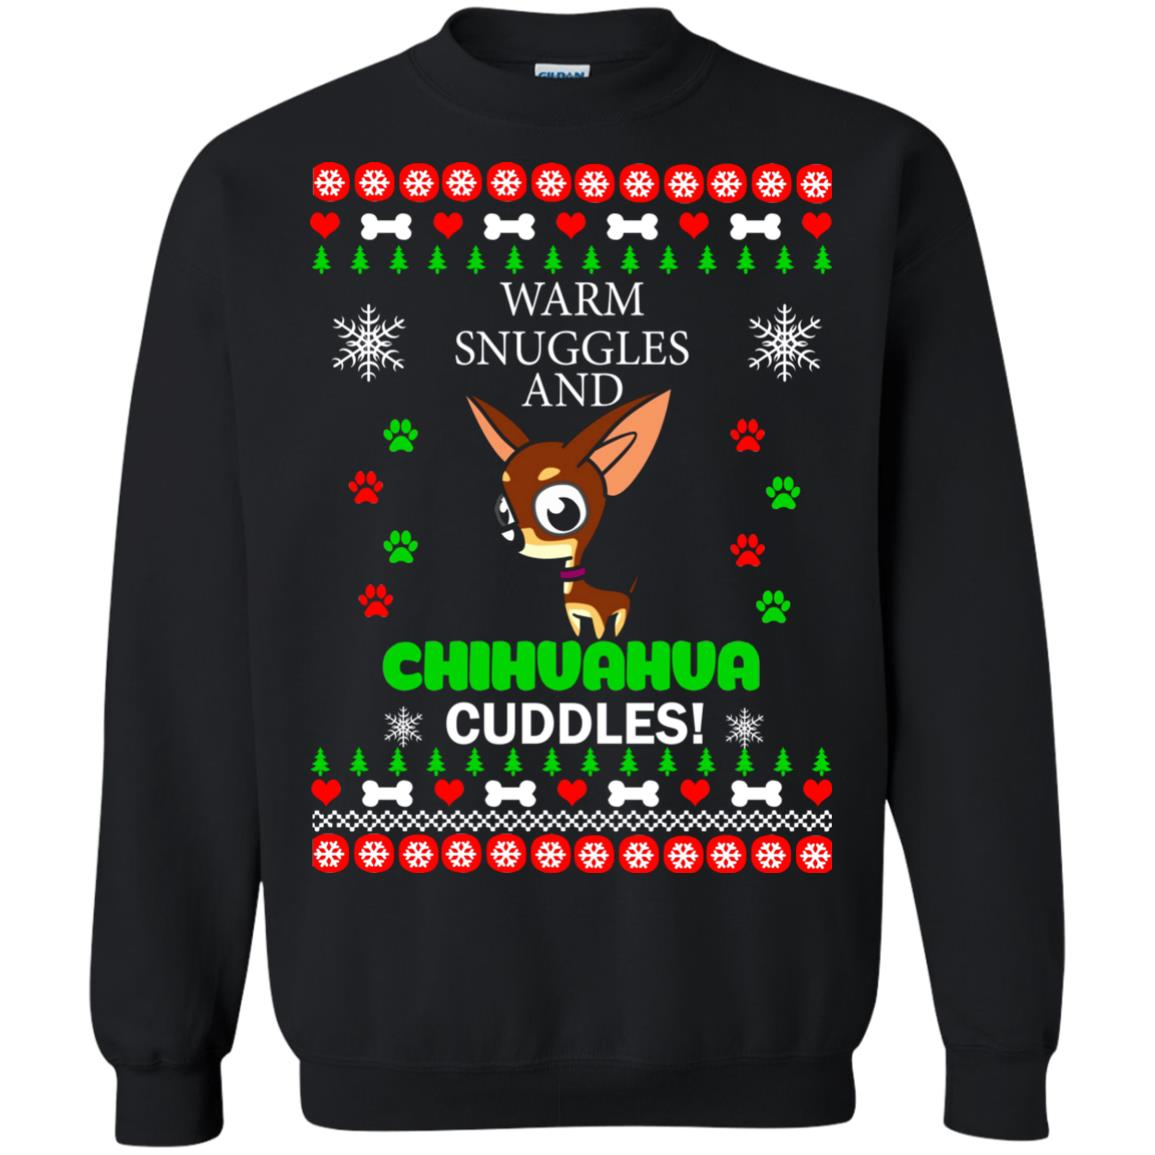 image 1957 - Warm snuggles and Chihuahua cuddles Christmas sweater